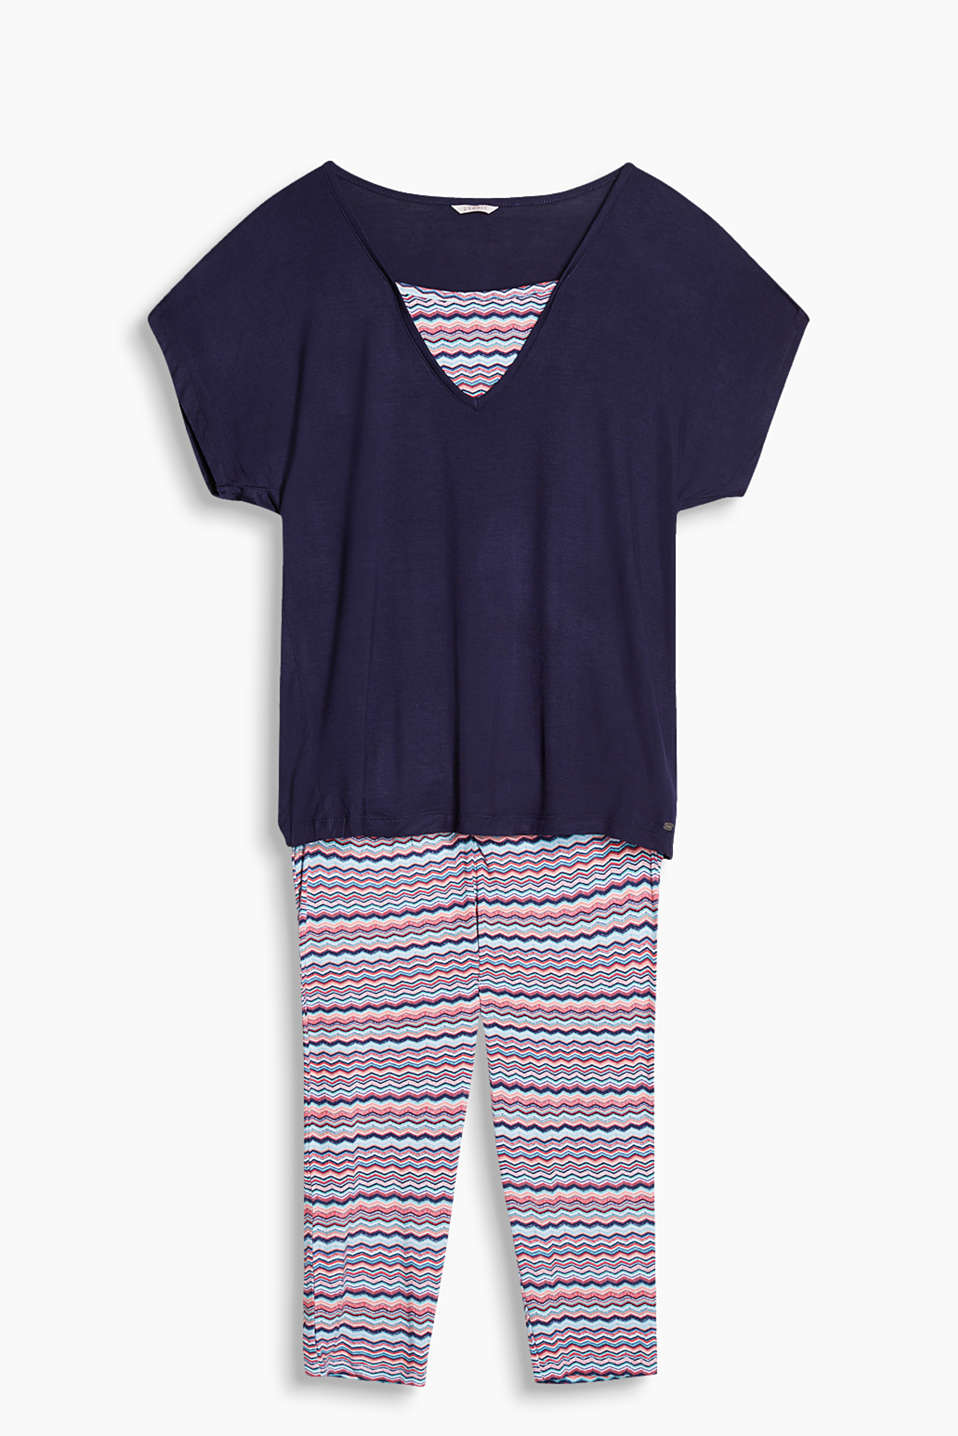 Summery pyjamas with a plain-coloured top and capri bottoms in a colourful zigzag design, stretch jersey